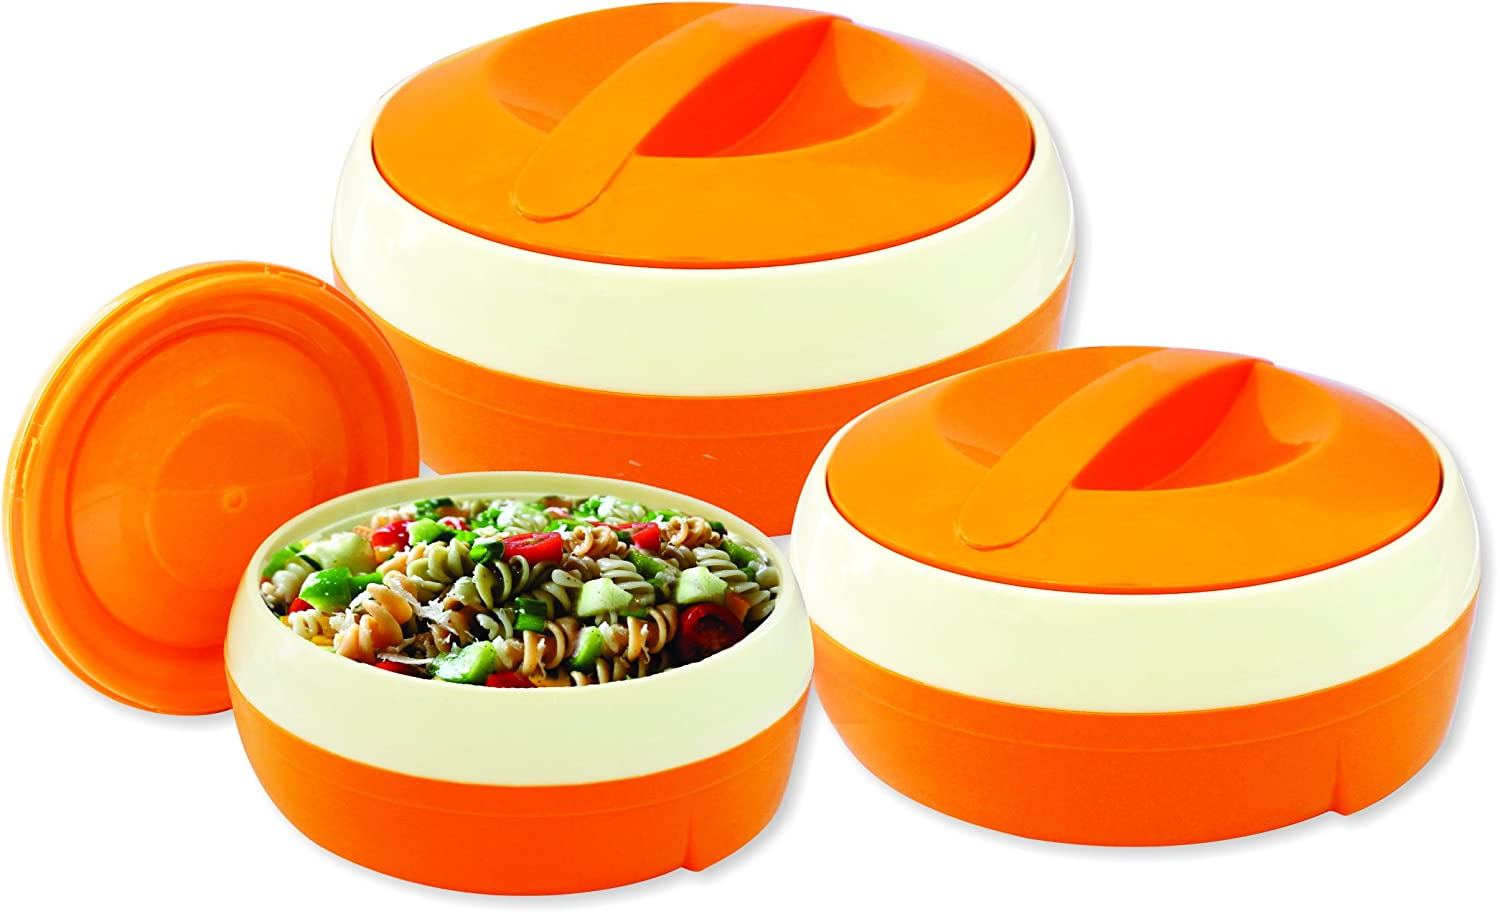 Princeware Solar Plastic Casserole Set, 3-Pieces, Orange